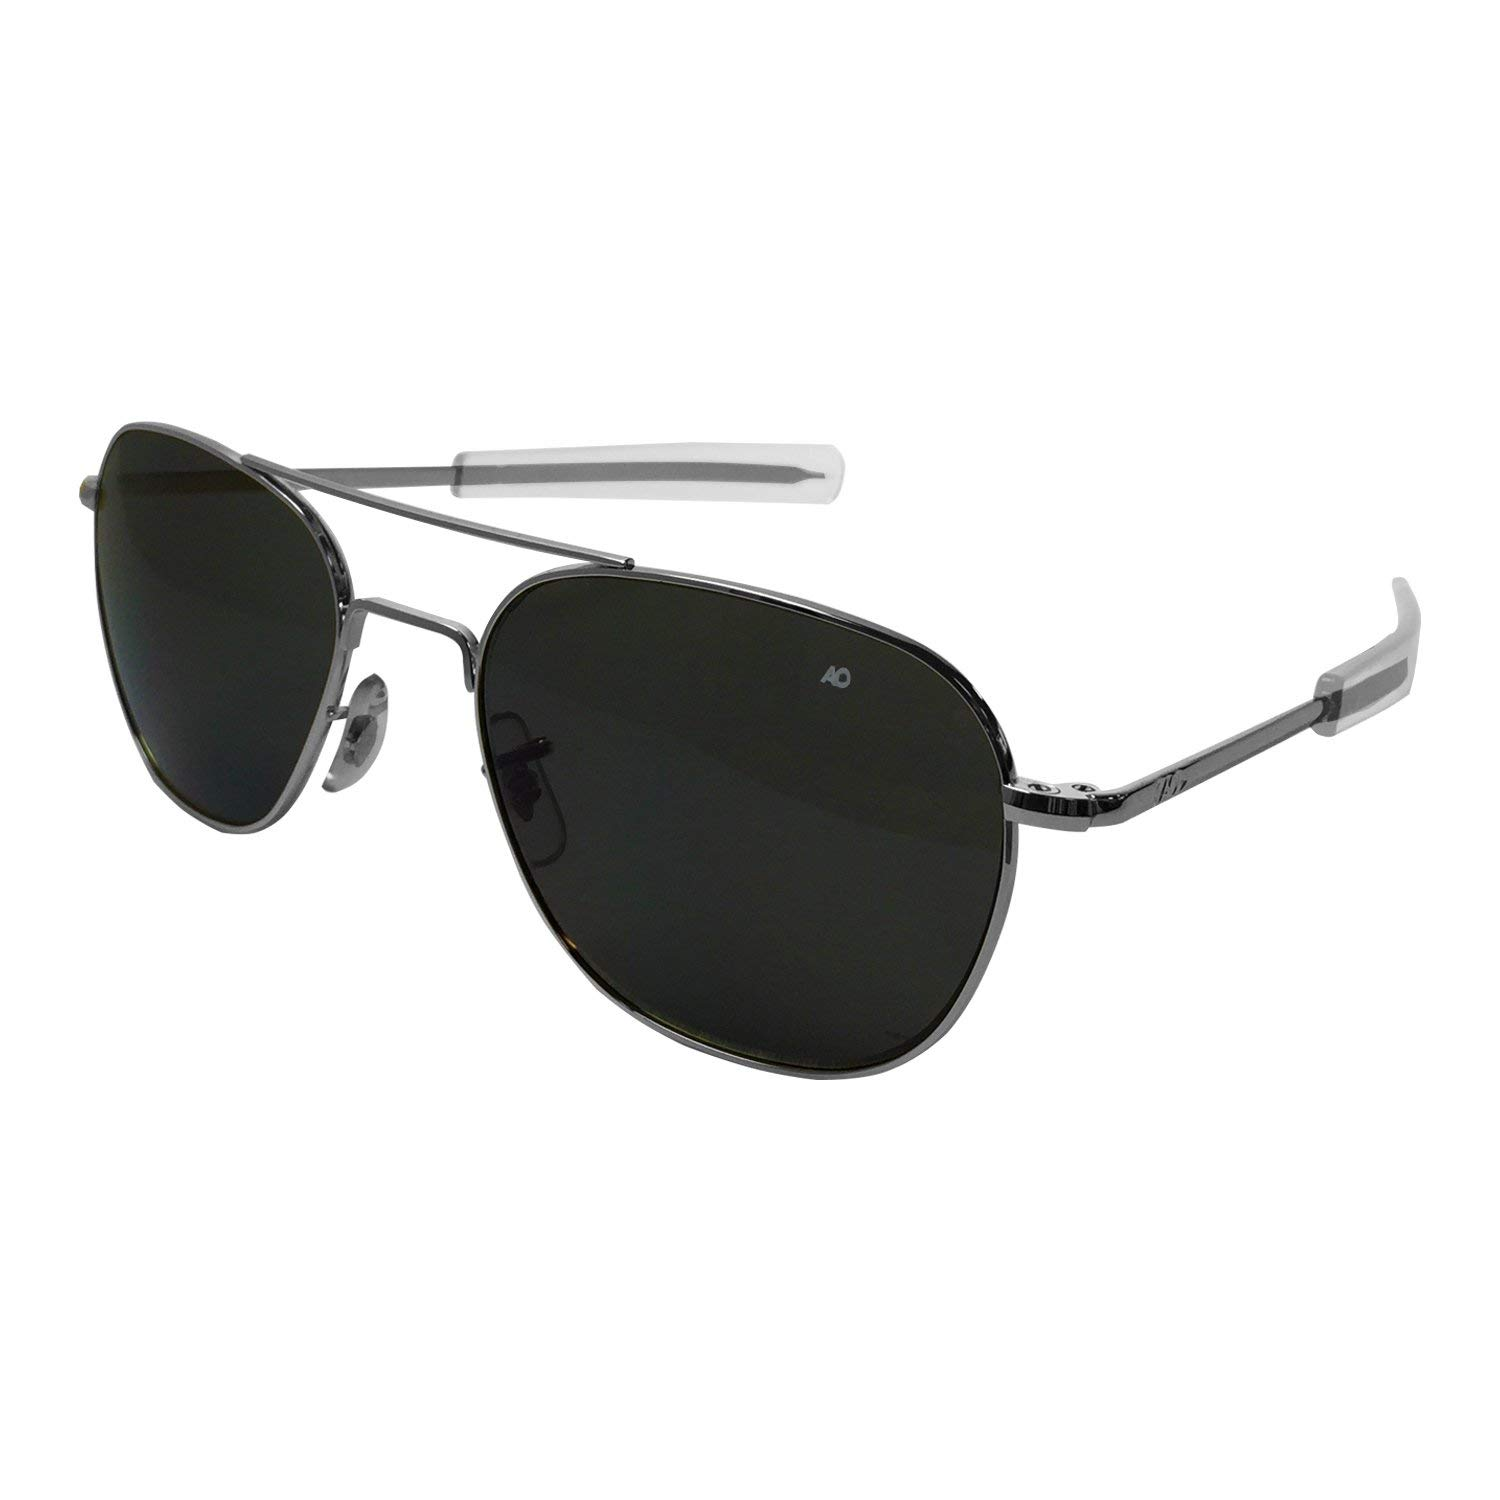 cc00f234528e AO Original Pilot Sunglasses, Bayonet, Silver Frame, True Color Gray Glass  Lens,